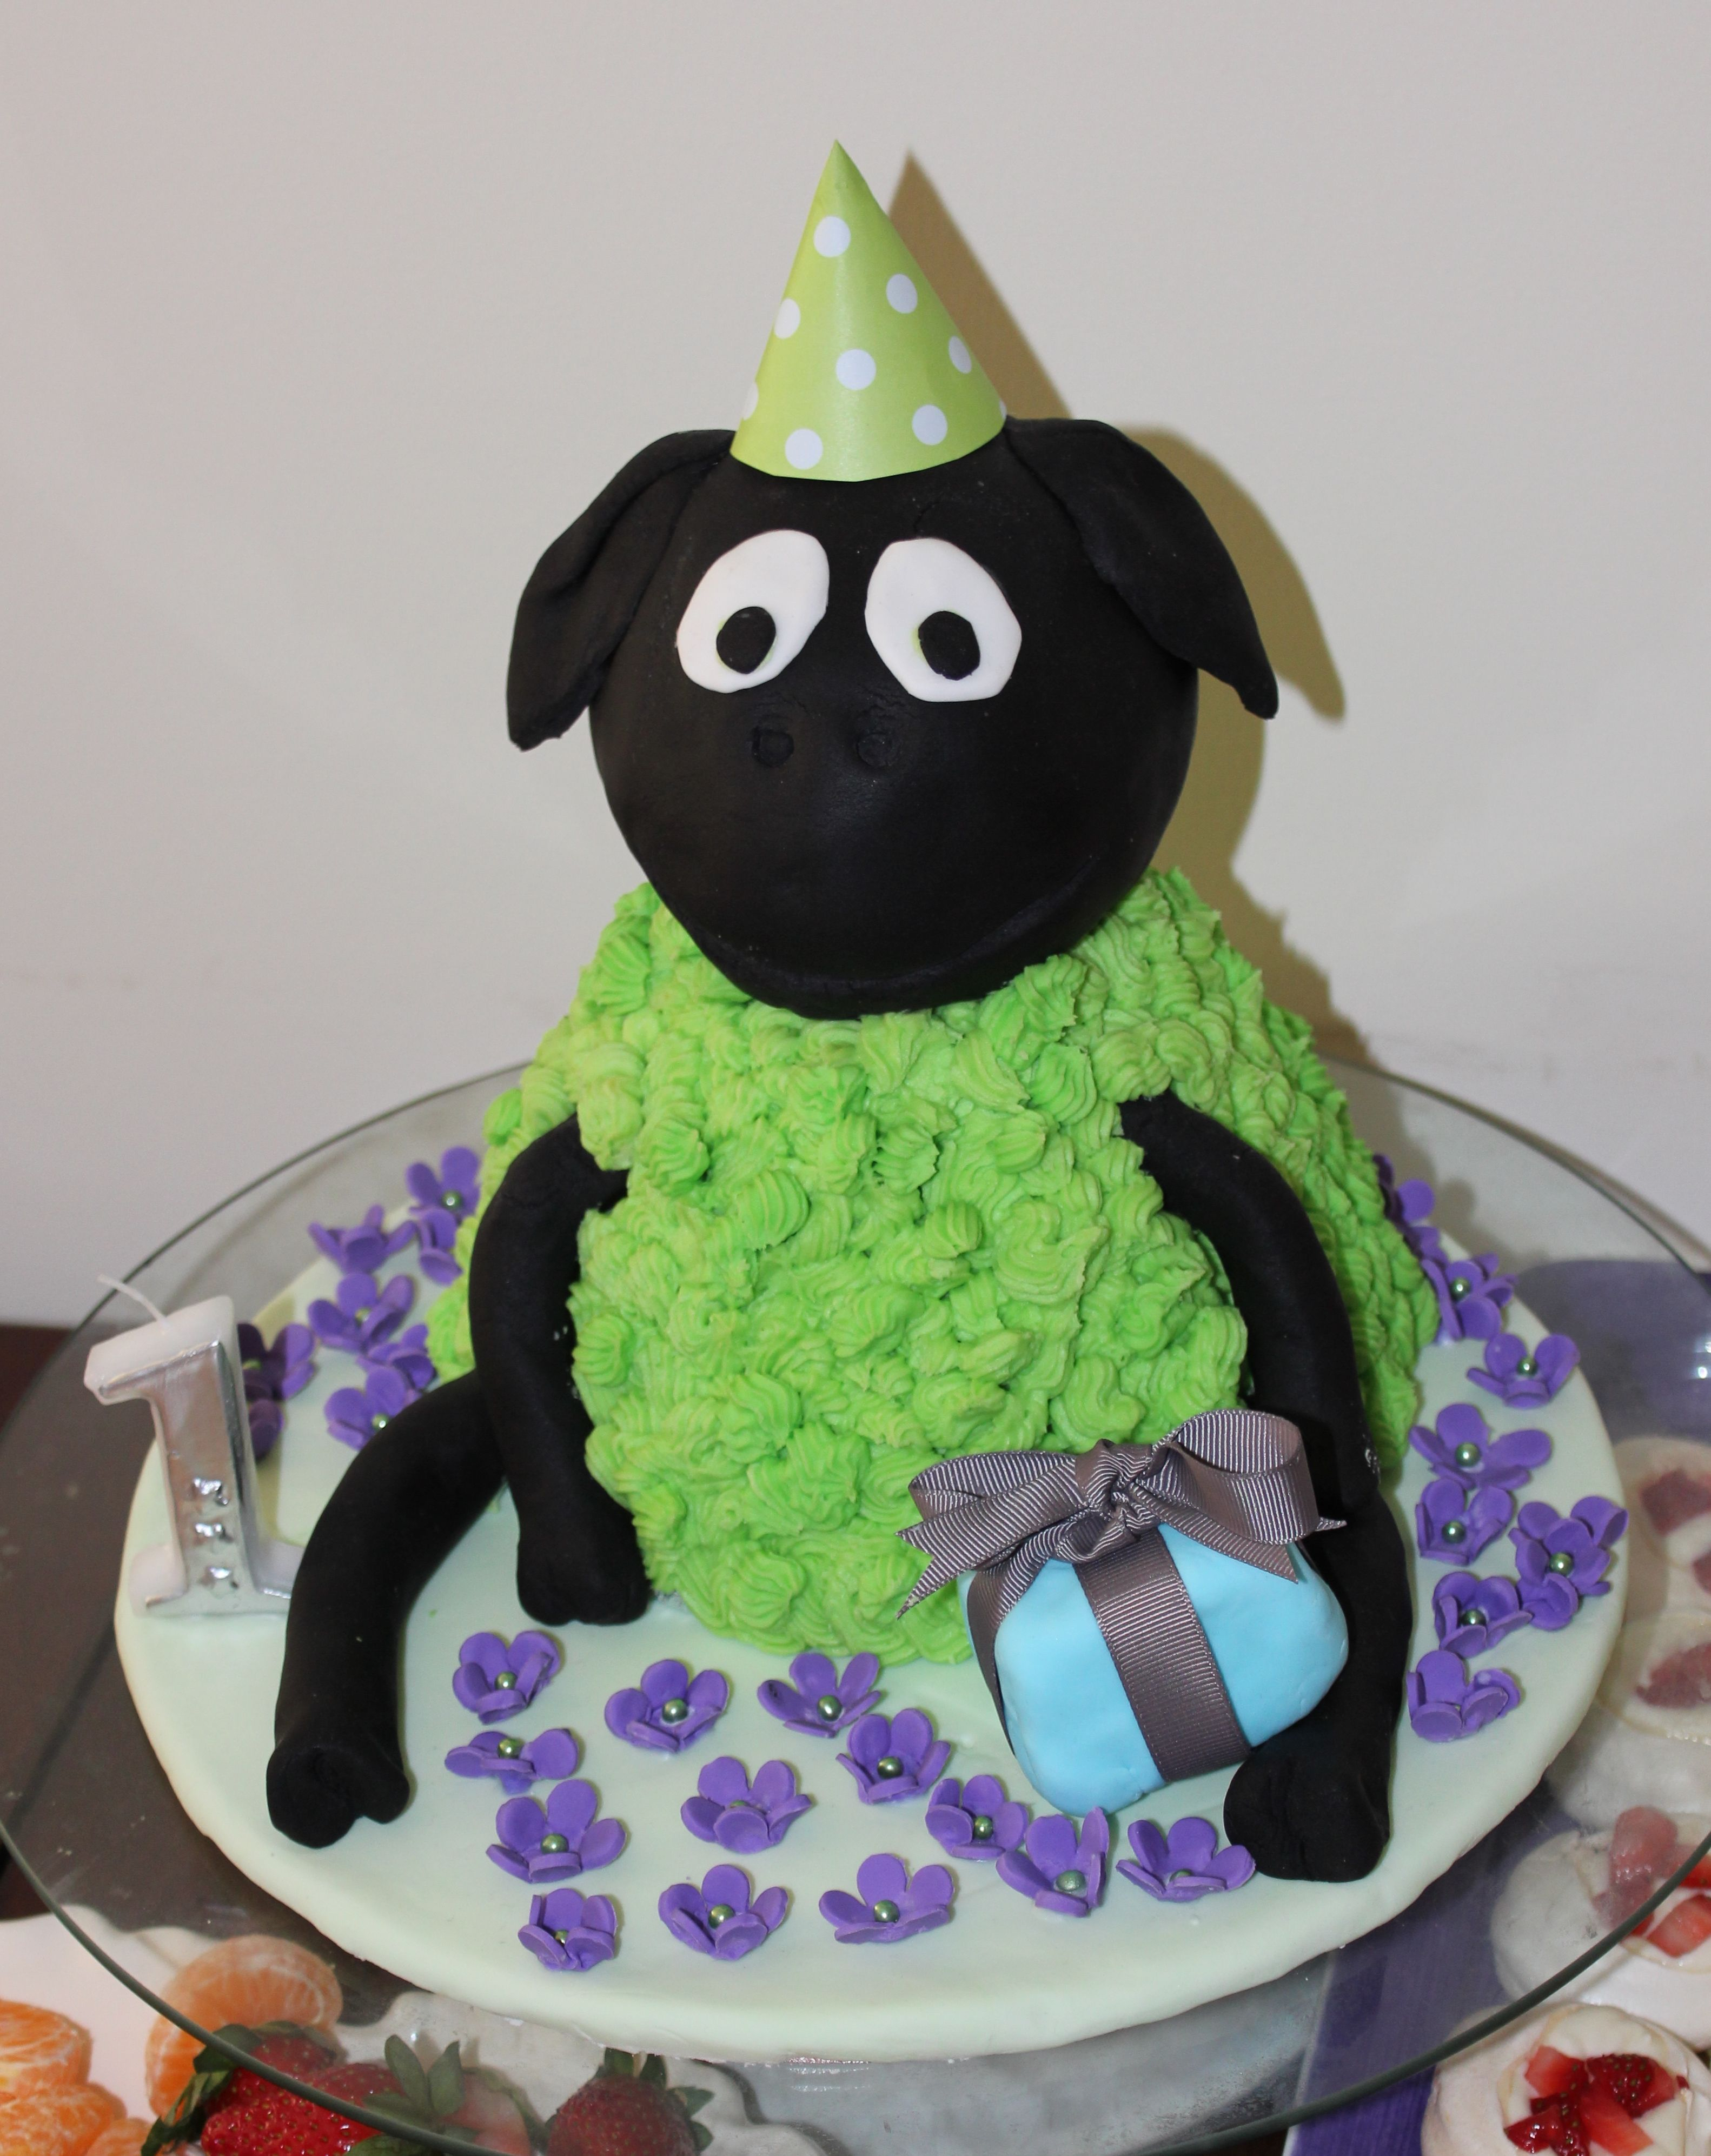 Where is the Green Sheep cake Not by me but by my beautiful sister